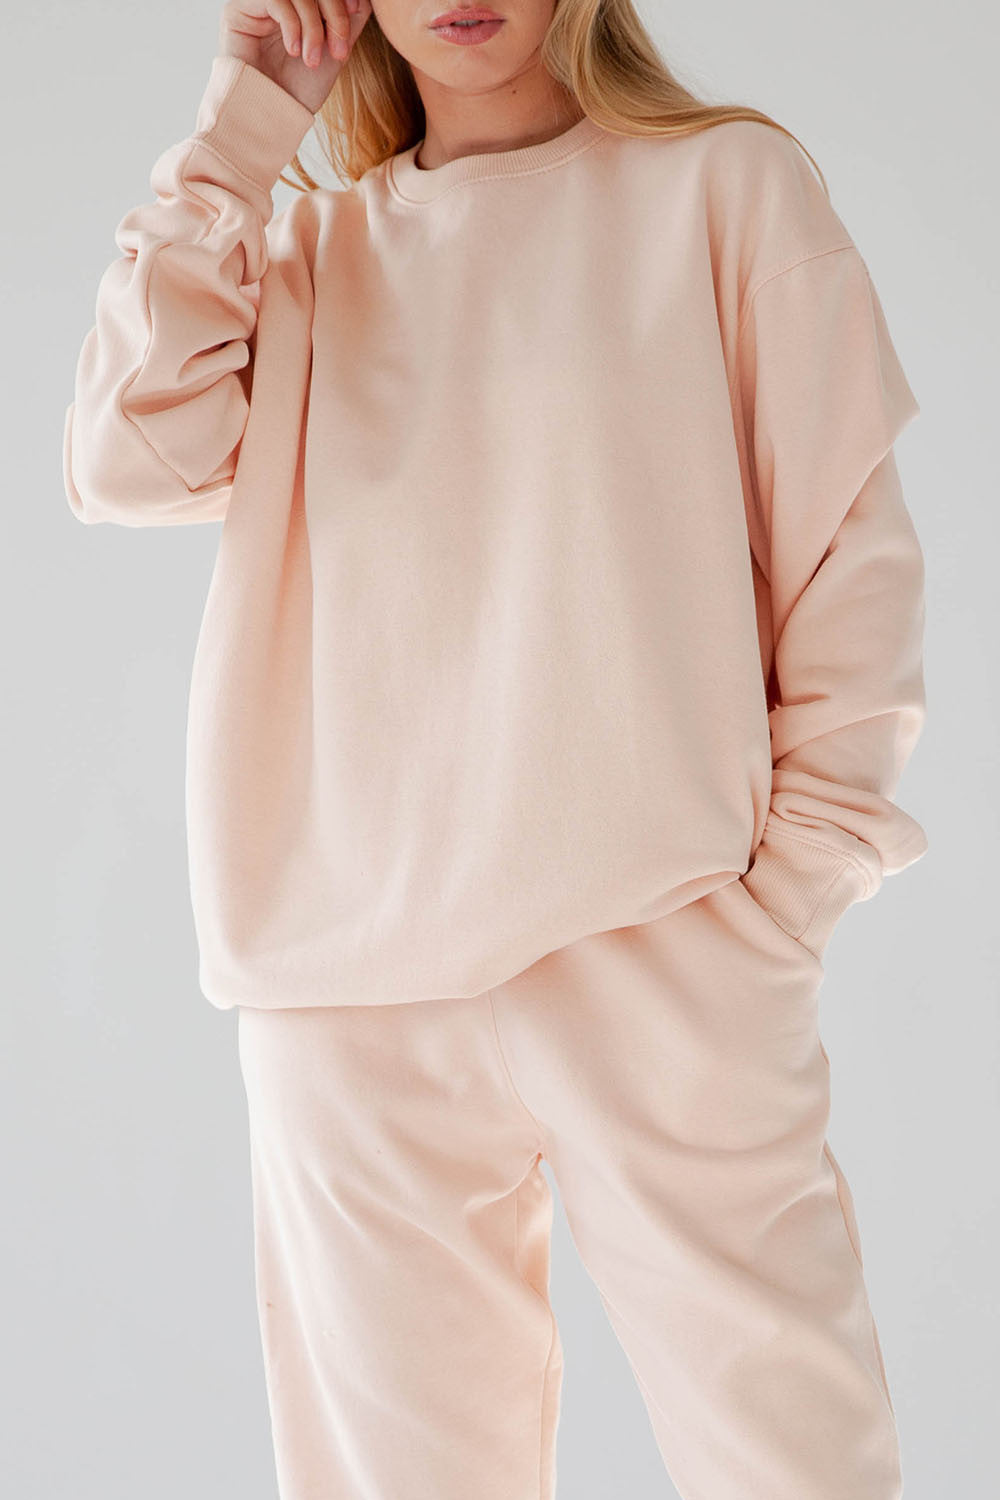 LSF Fleece Oversized Sweatshirt